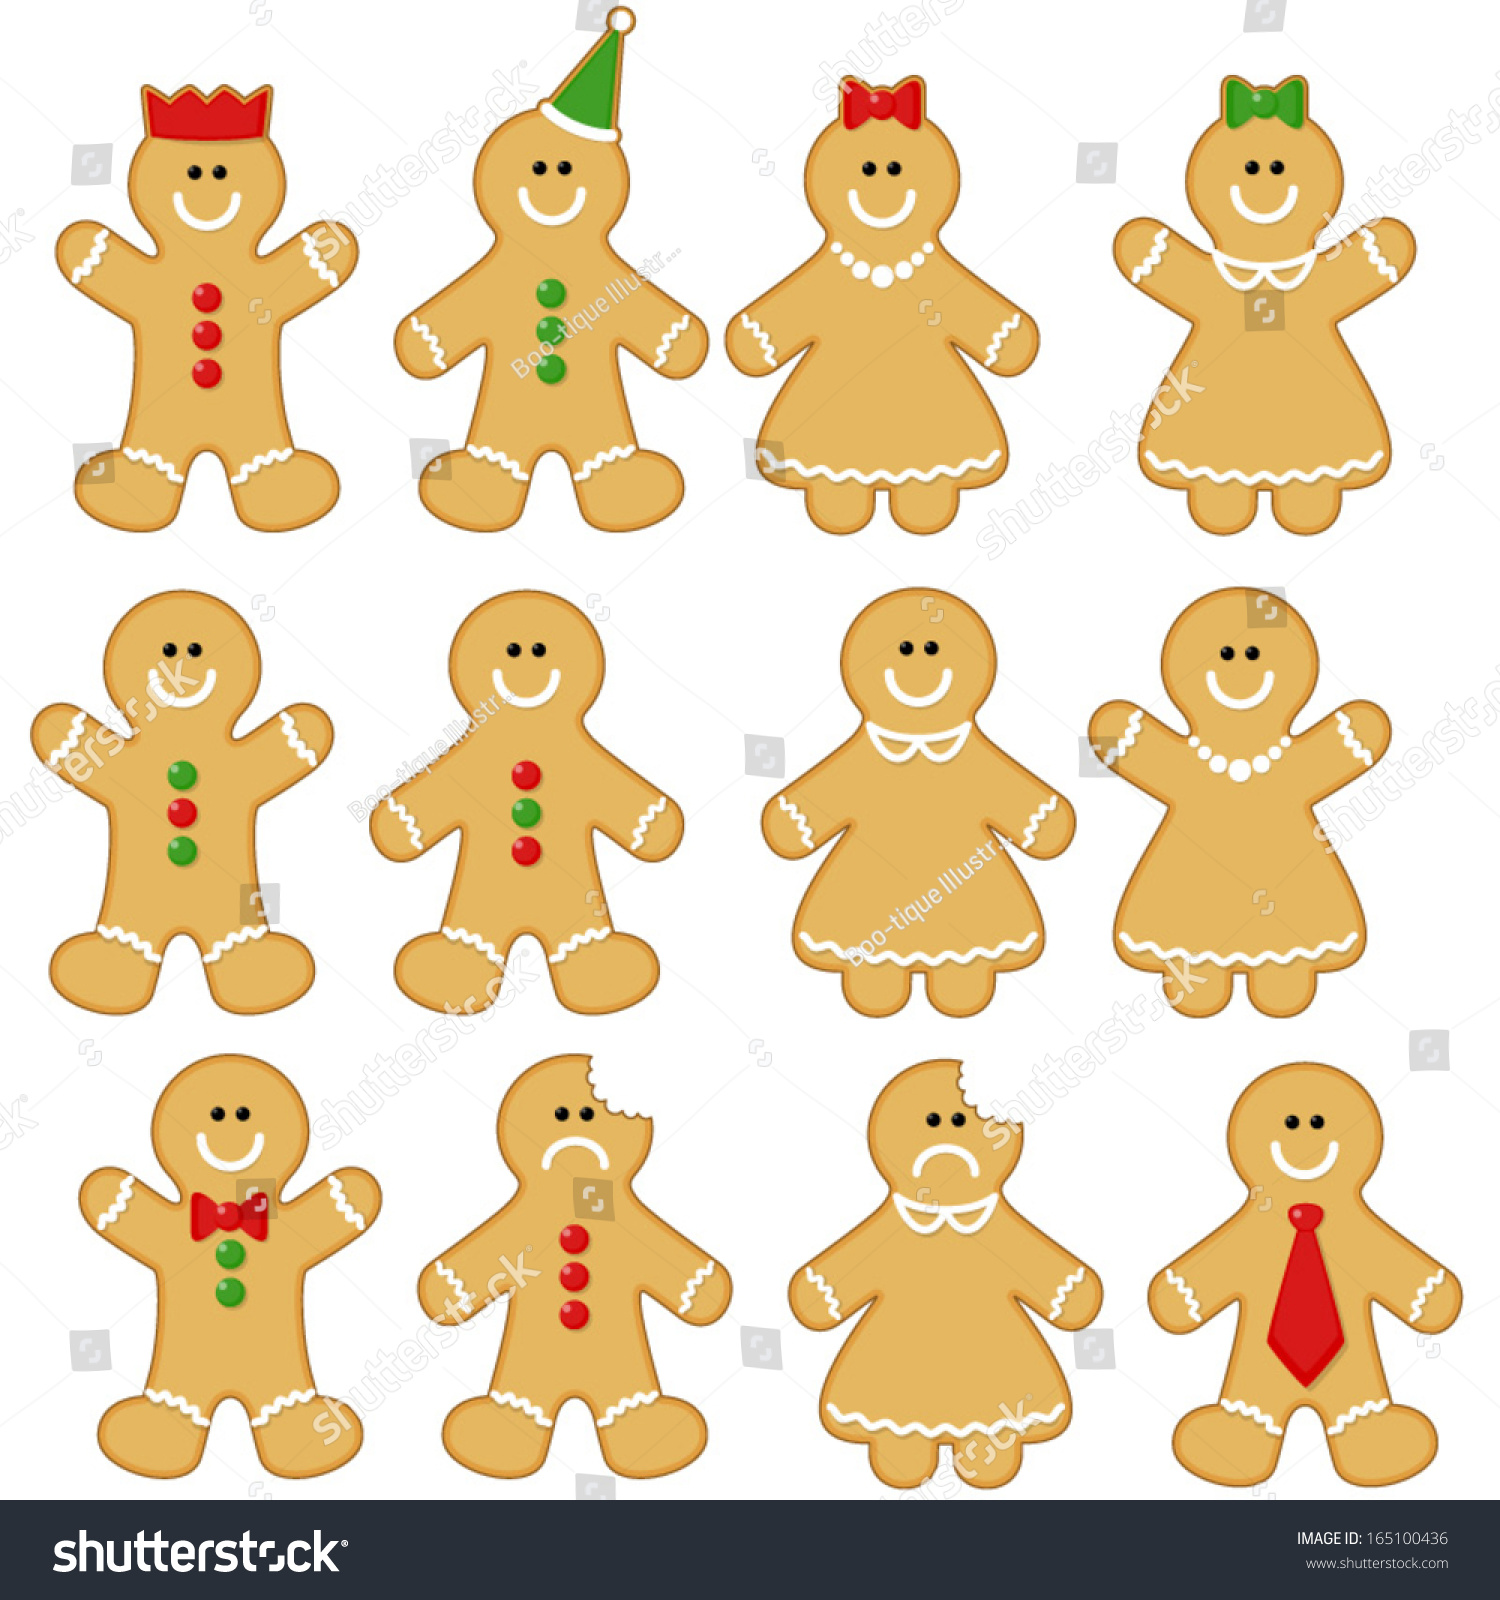 gingerbread man clipart set gingerbread man stock vector royalty rh shutterstock com Gingerbread Man Outline Clip Art gingerbread man clip art free